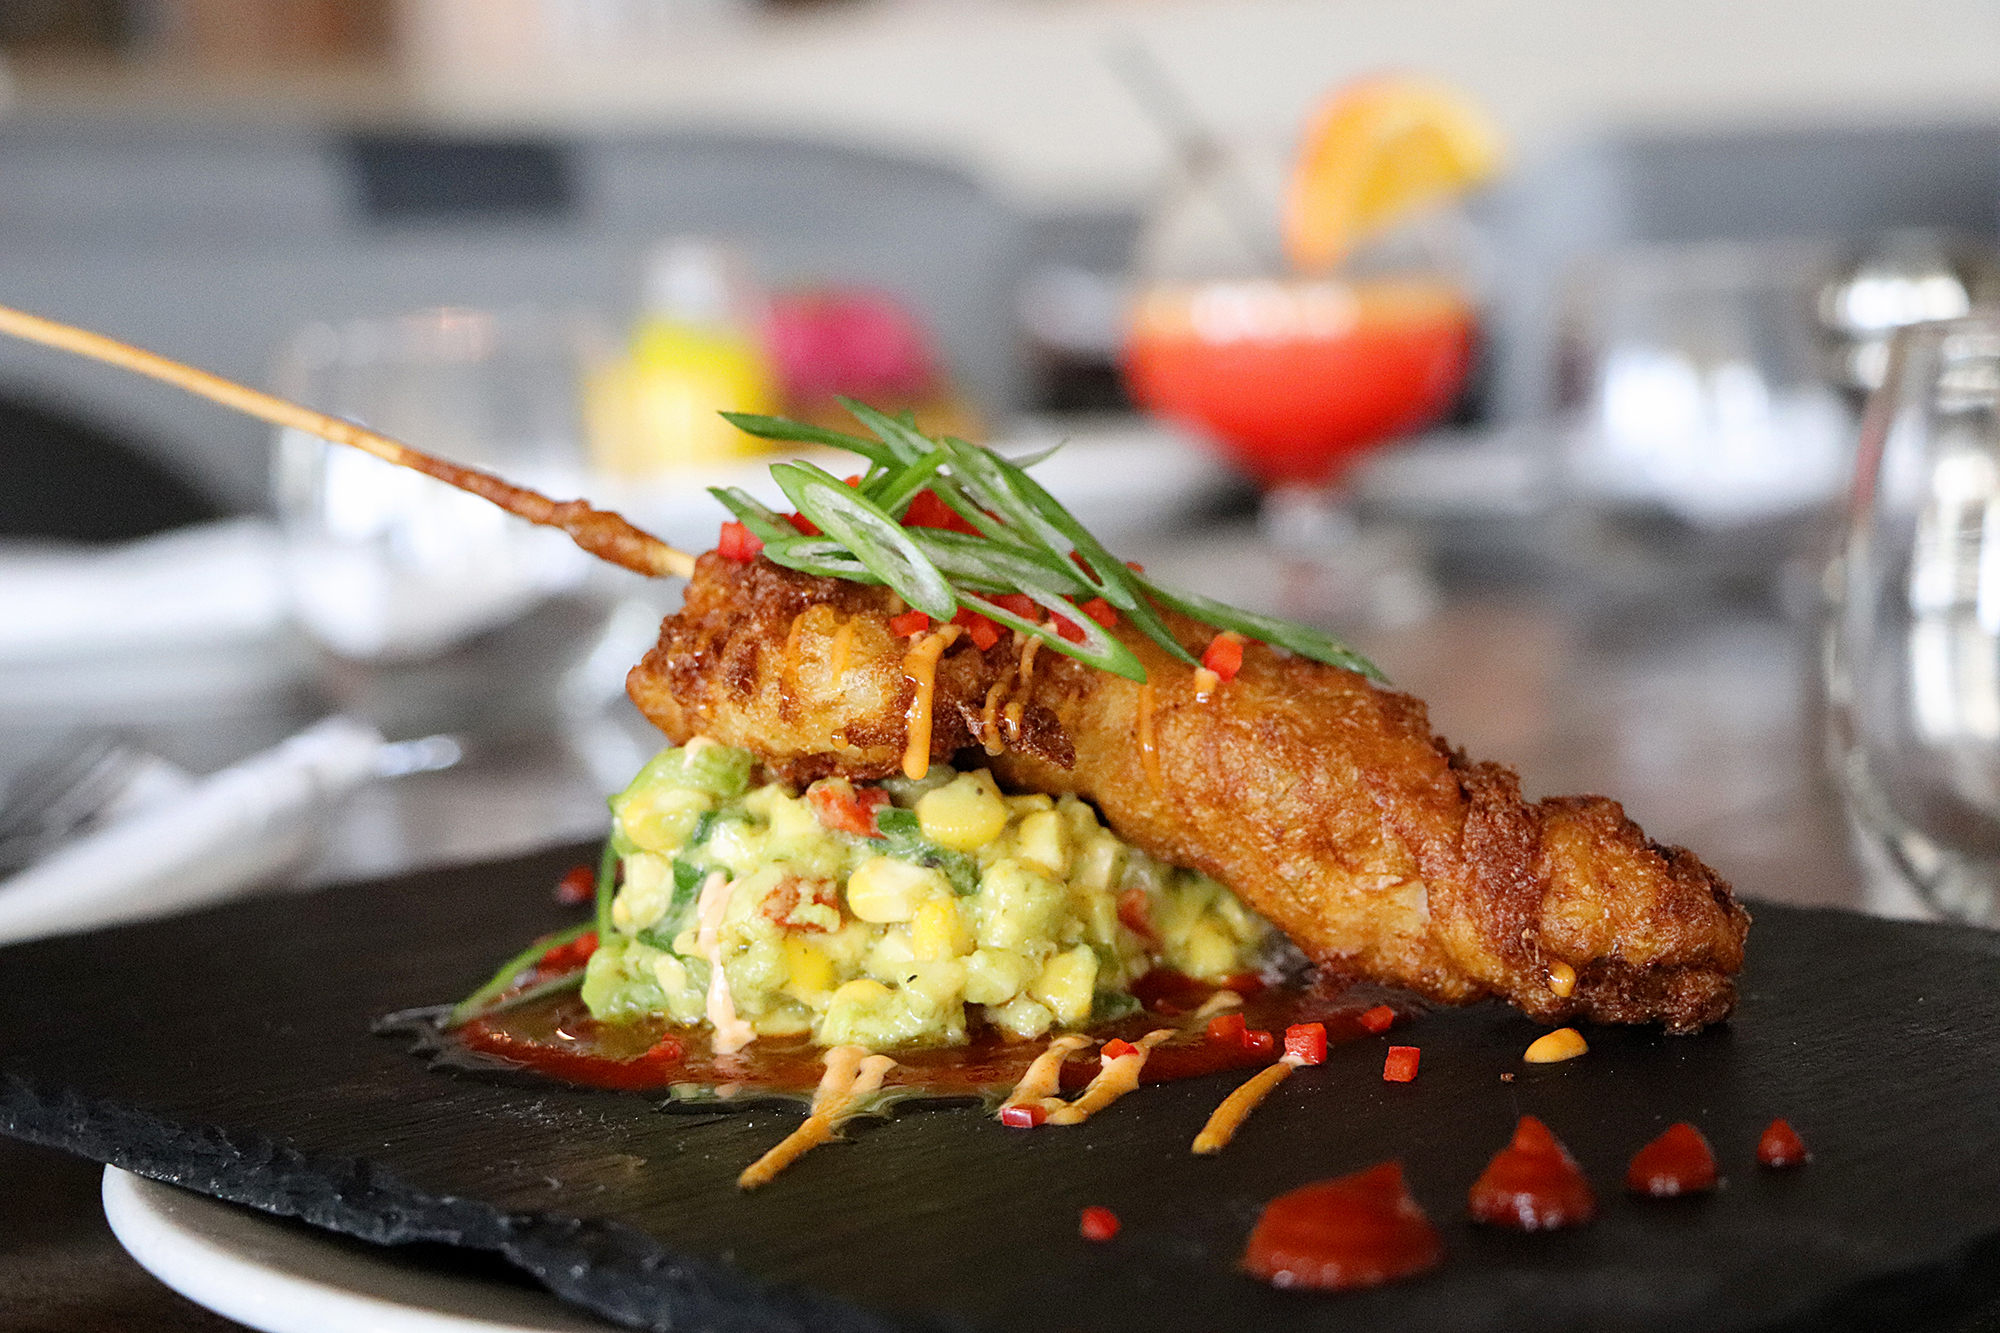 Lobster Corn Dog from Wild Thyme Oceanside Eatery